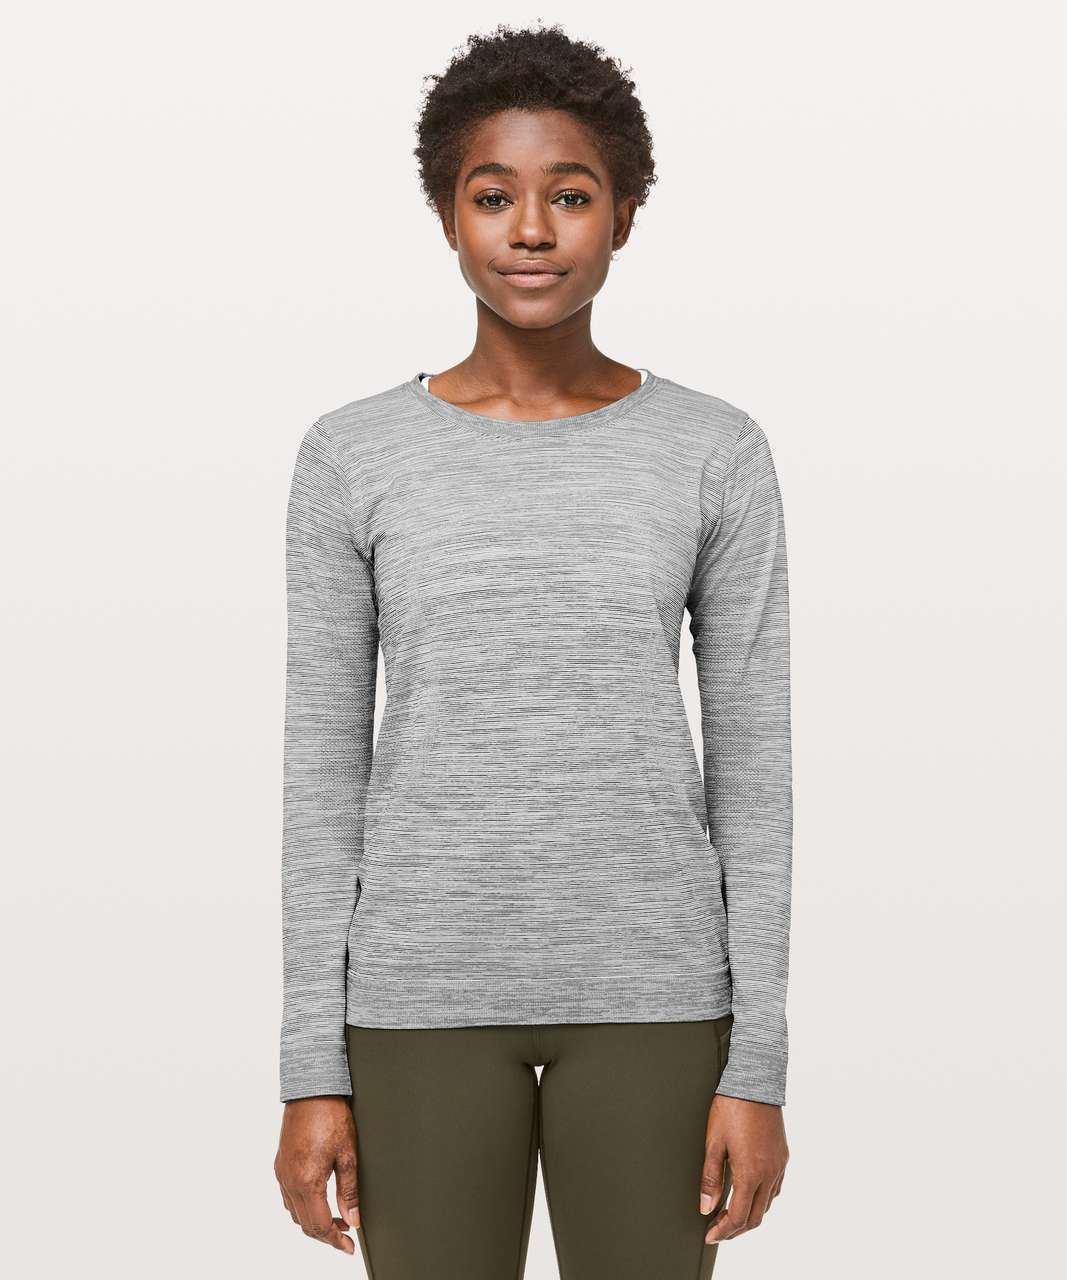 Lululemon Swiftly Tech Long Sleeve (Breeze) *Relaxed Fit - Sheer Blue / White / Black